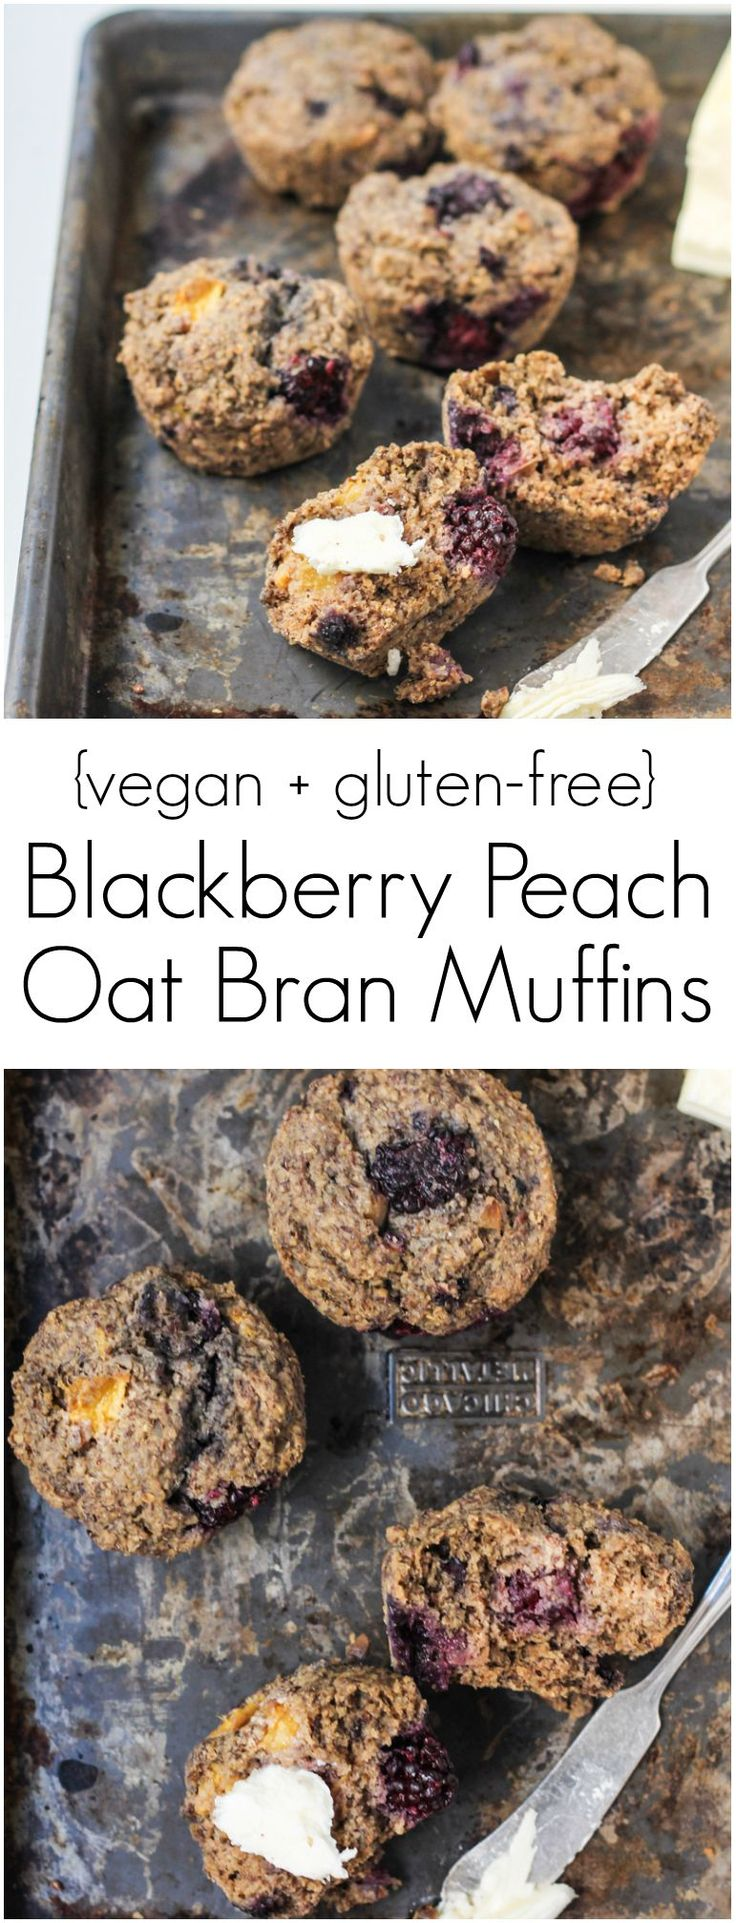 Healthy Breakfast Power Oat Bran muffins loaded with fresh juicy peaches, blackberries and an addicting chai-cinnamon spice. Flax and chia seeds are added to boost nutrition, fiber & protein!